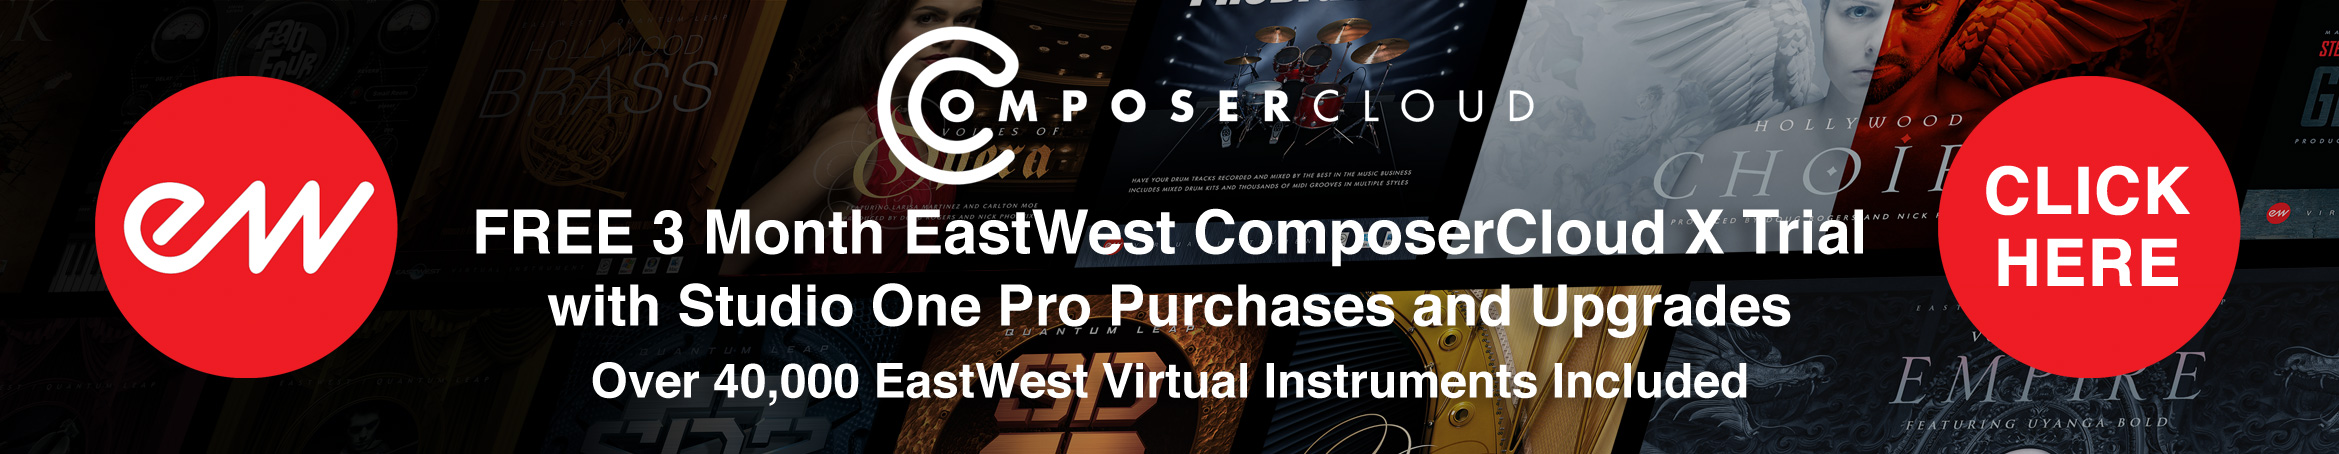 Eastwest Composercloud 3 months